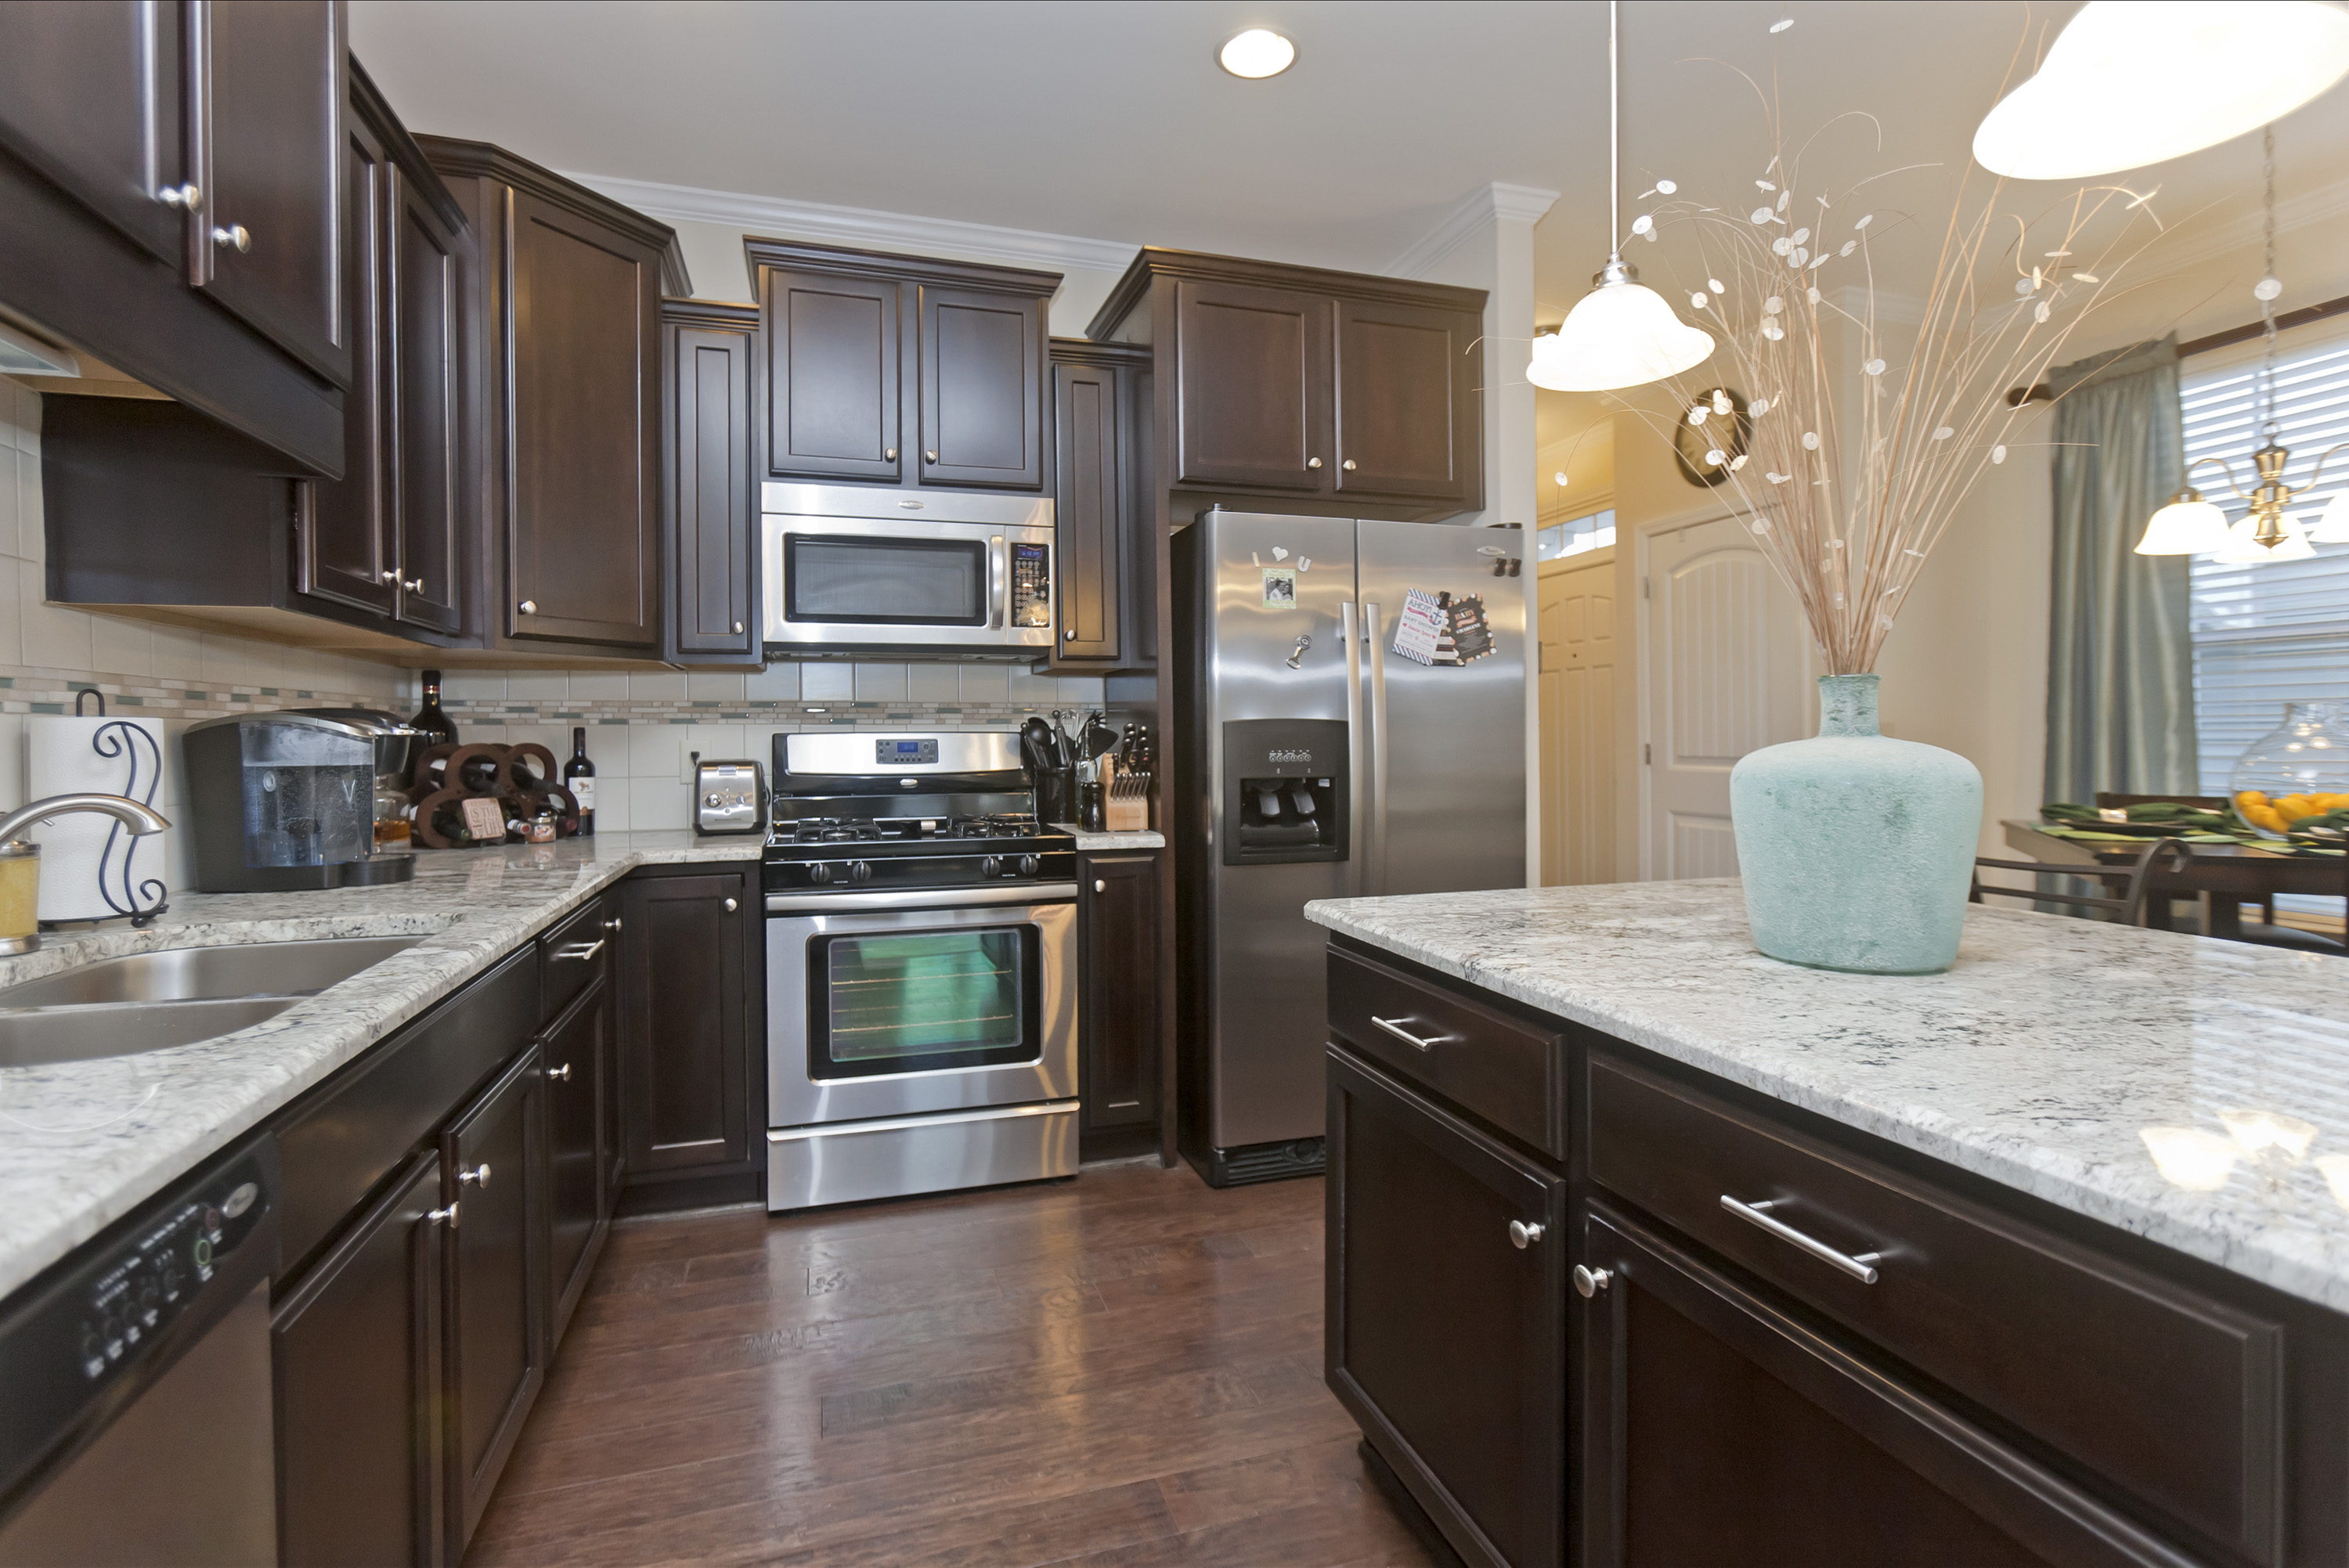 JUST LISTED 2411 Swans Rest Way Raleigh Open House Saturday 1 3pm